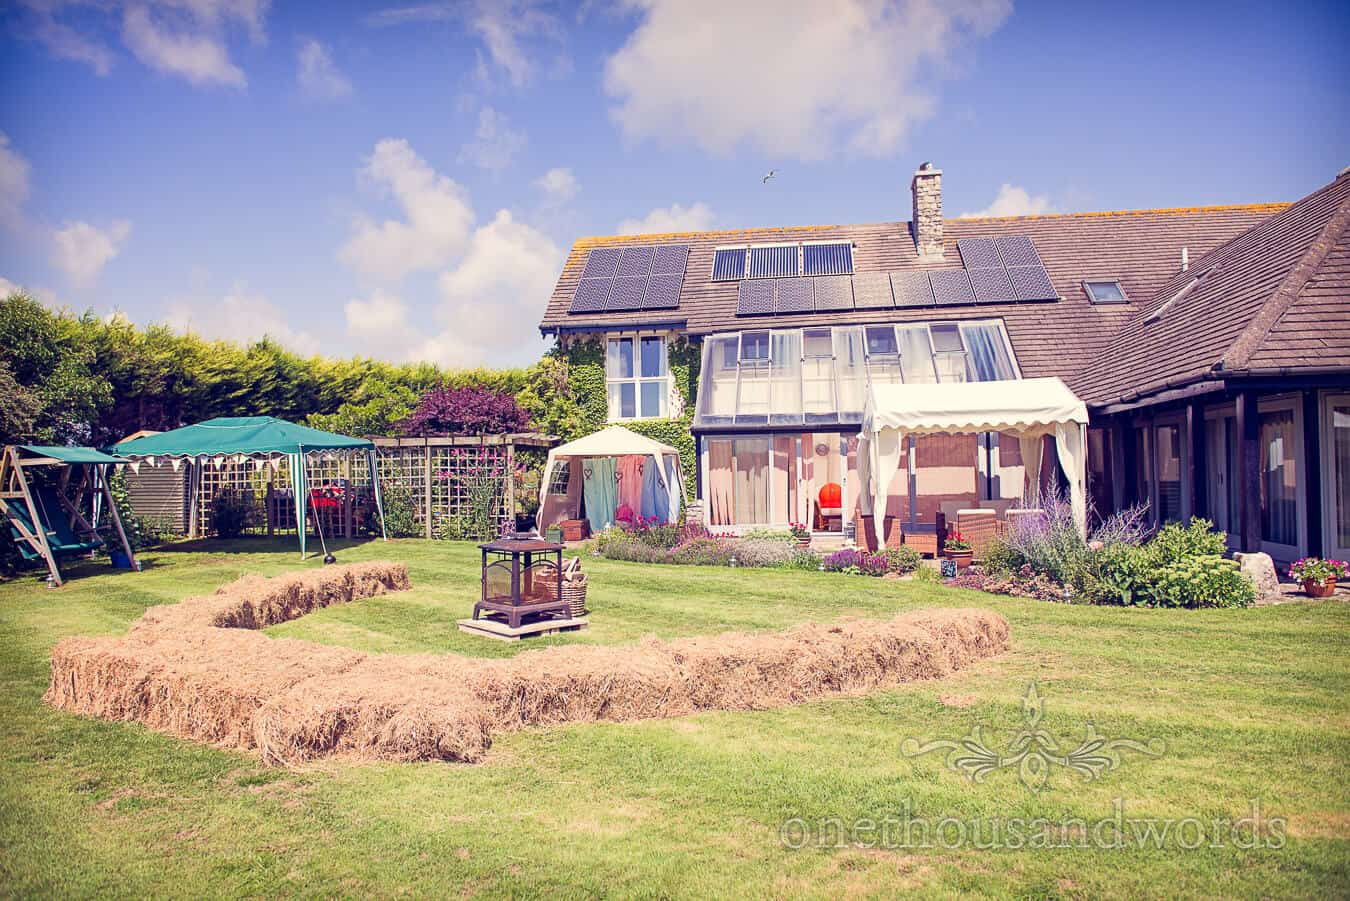 Dorset Home Wedding venue with fire and staw bales in Martinstown, Dorset